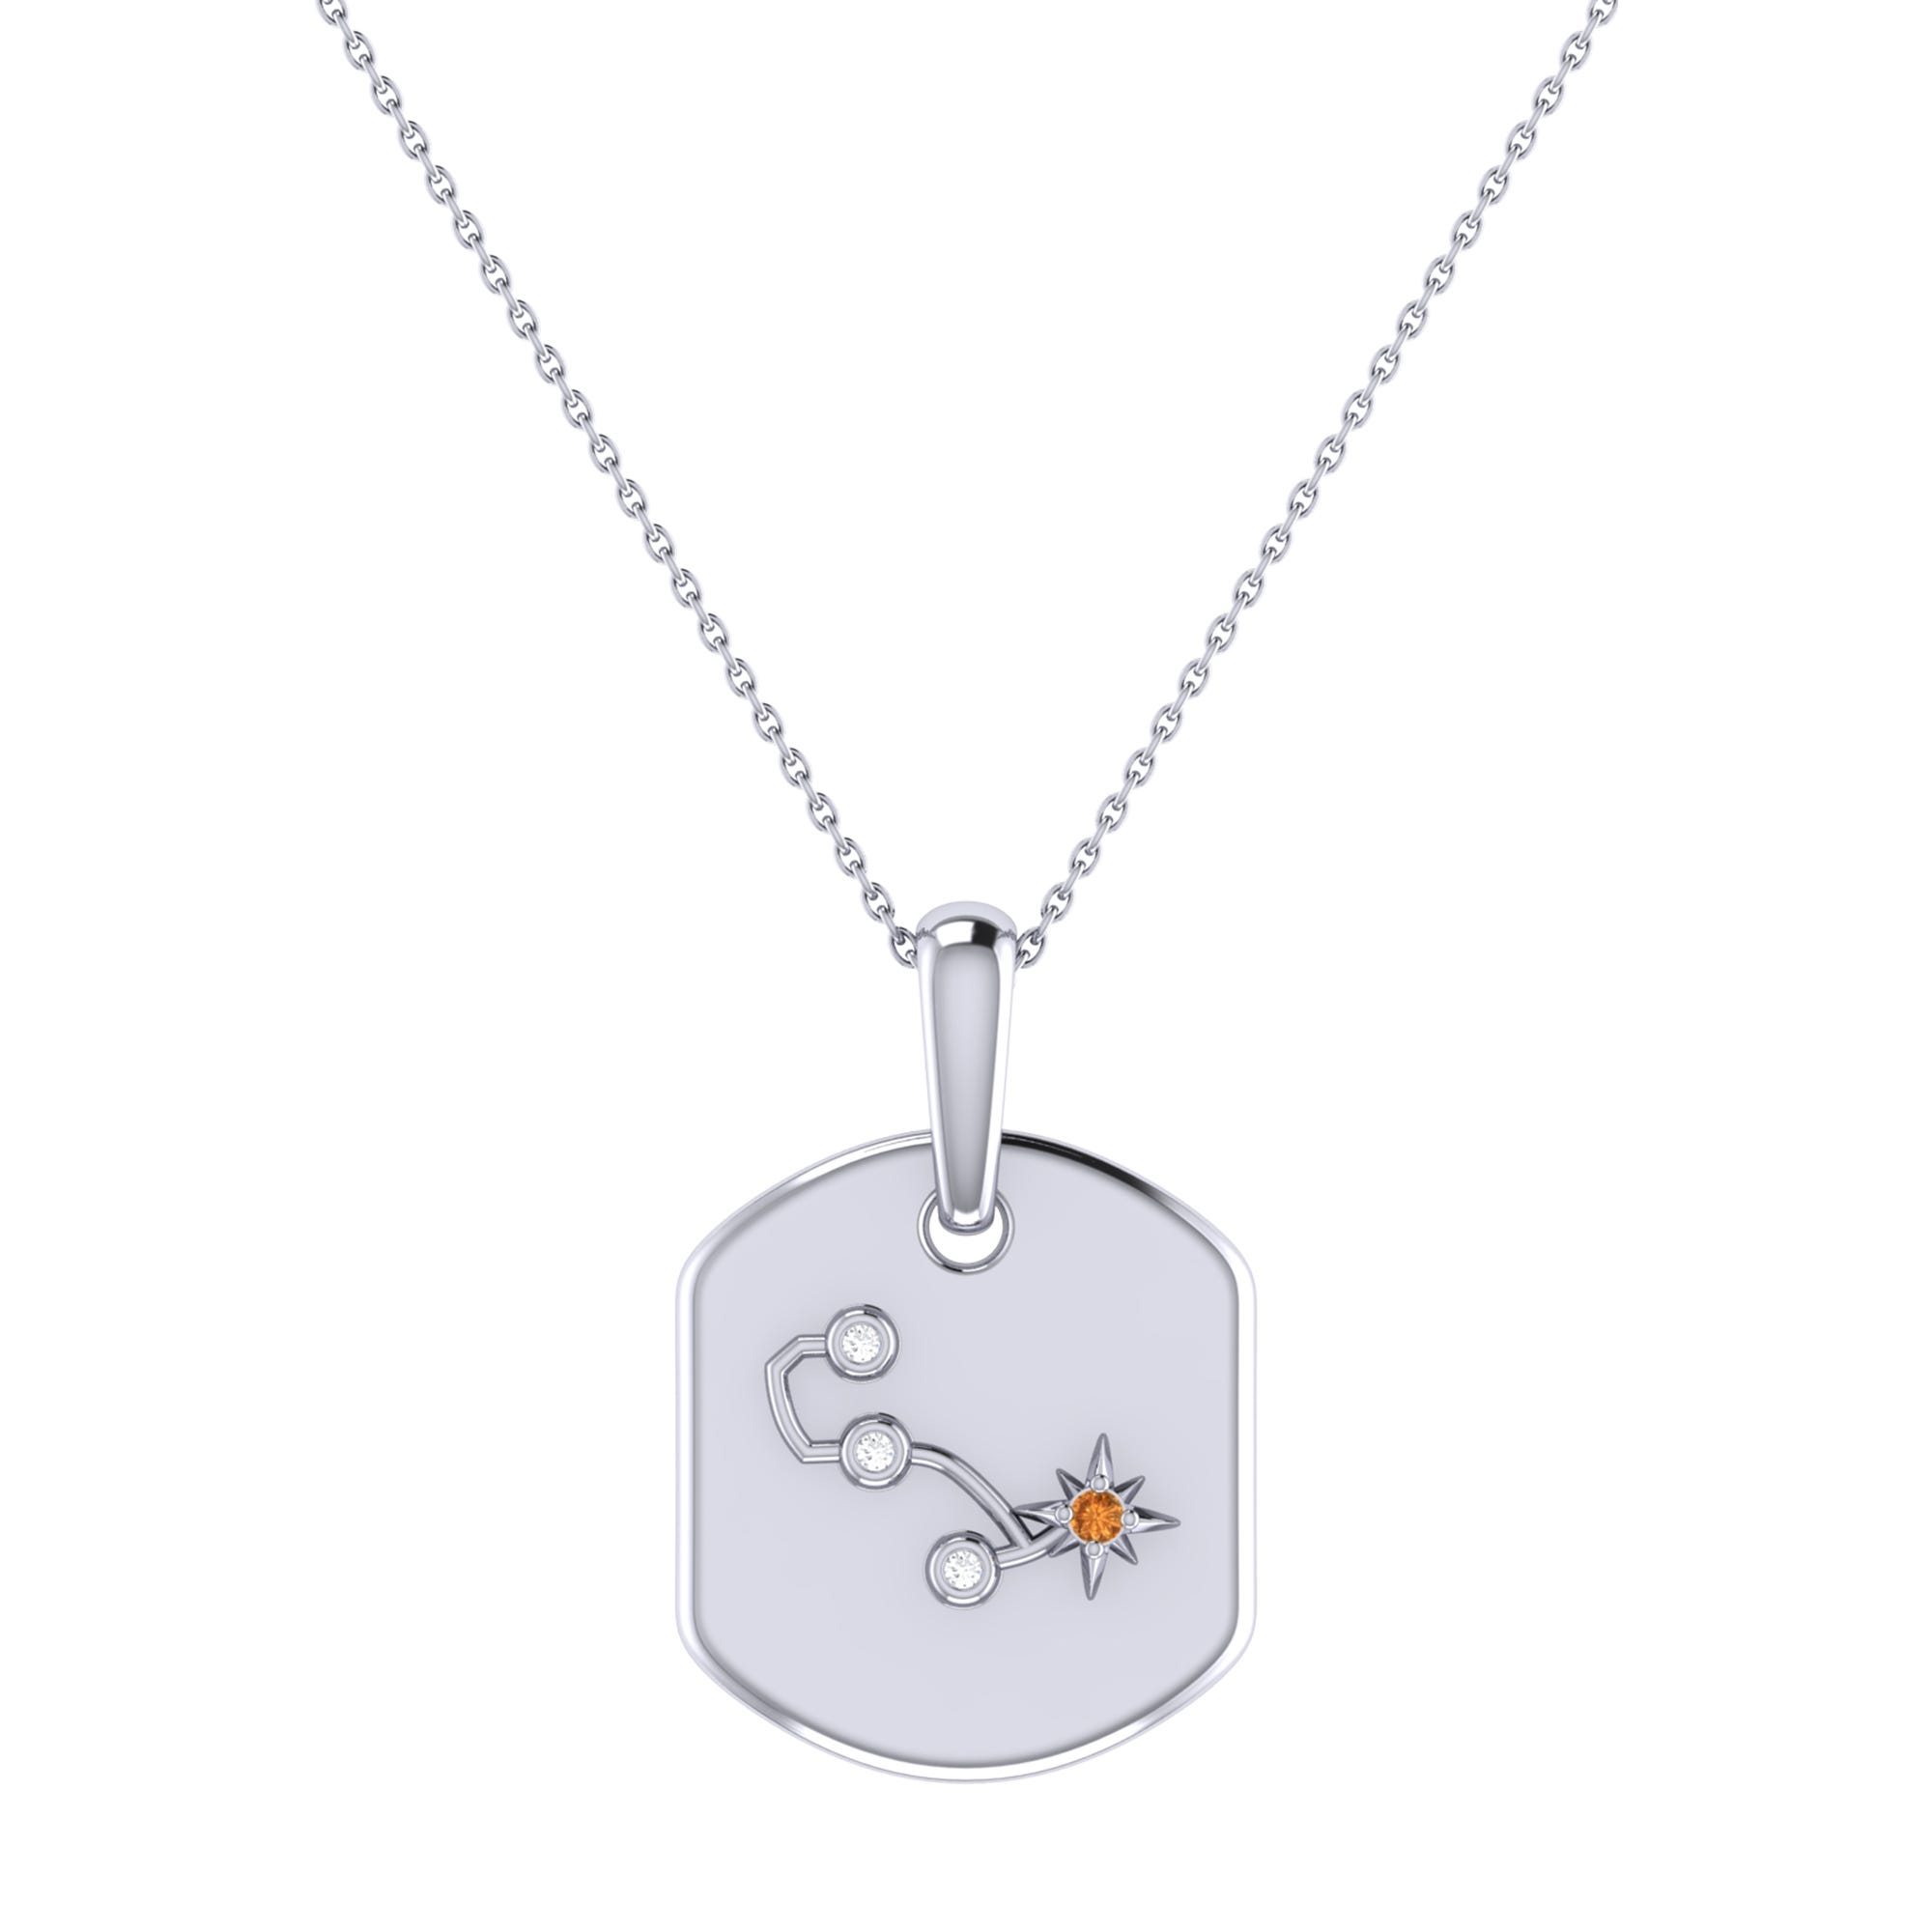 Diamond and Citrine Scorpio Constellation Tag Necklace in Sterling Silver